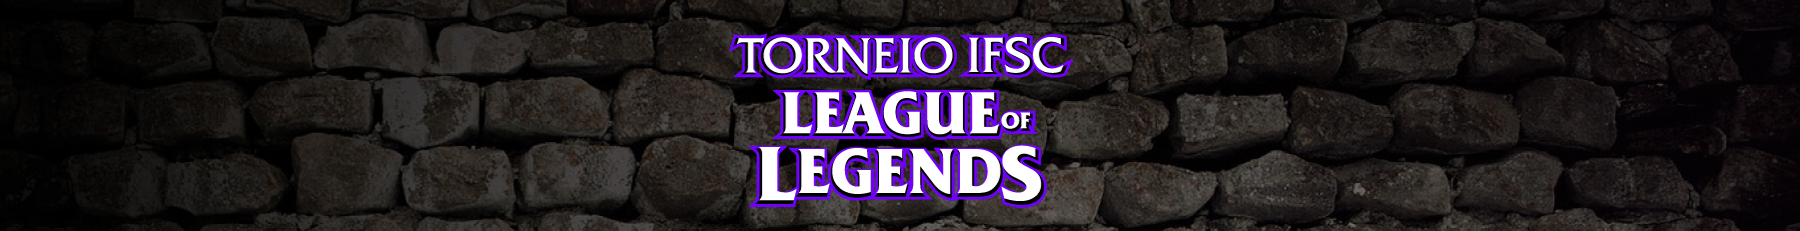 Torneio IFSC League of Legends